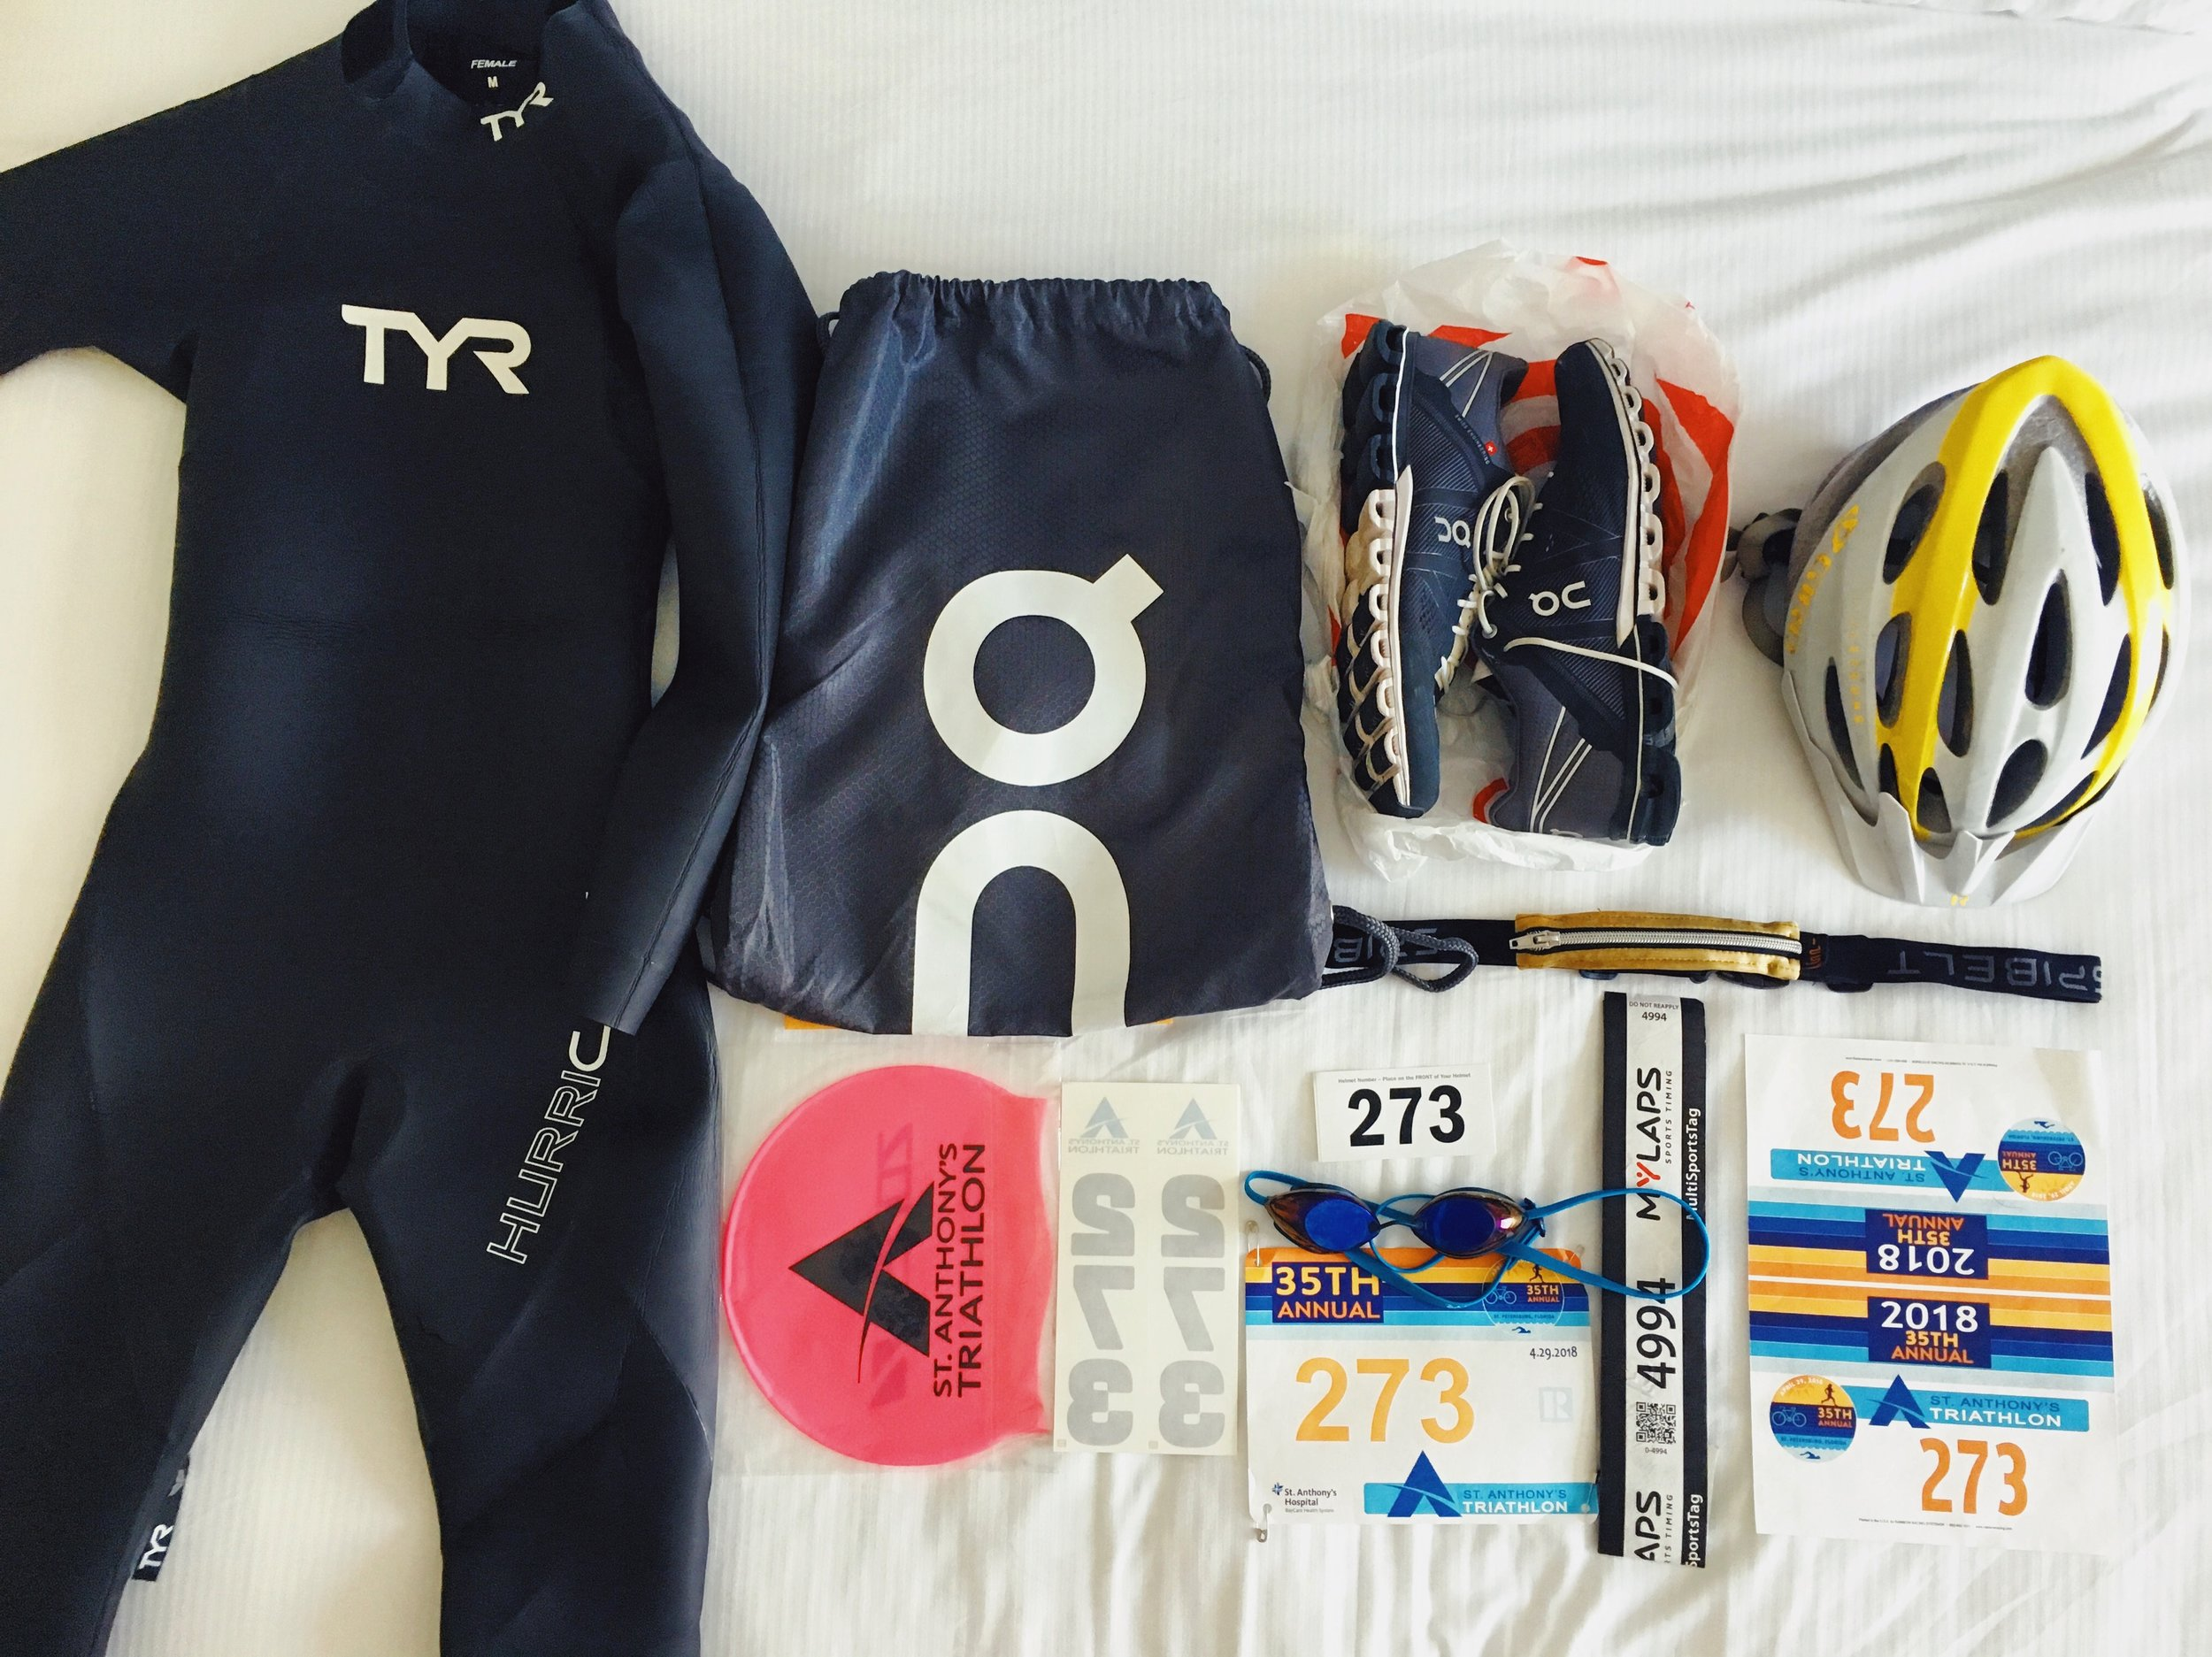 TYR Hurricane Wetsuit  , On Running backpack ,     On Running Cloud Flows ,  Spibelt Gold Race Belt ,  Giro Xara Helmet    ,  Speedo Vanquisher Goggles